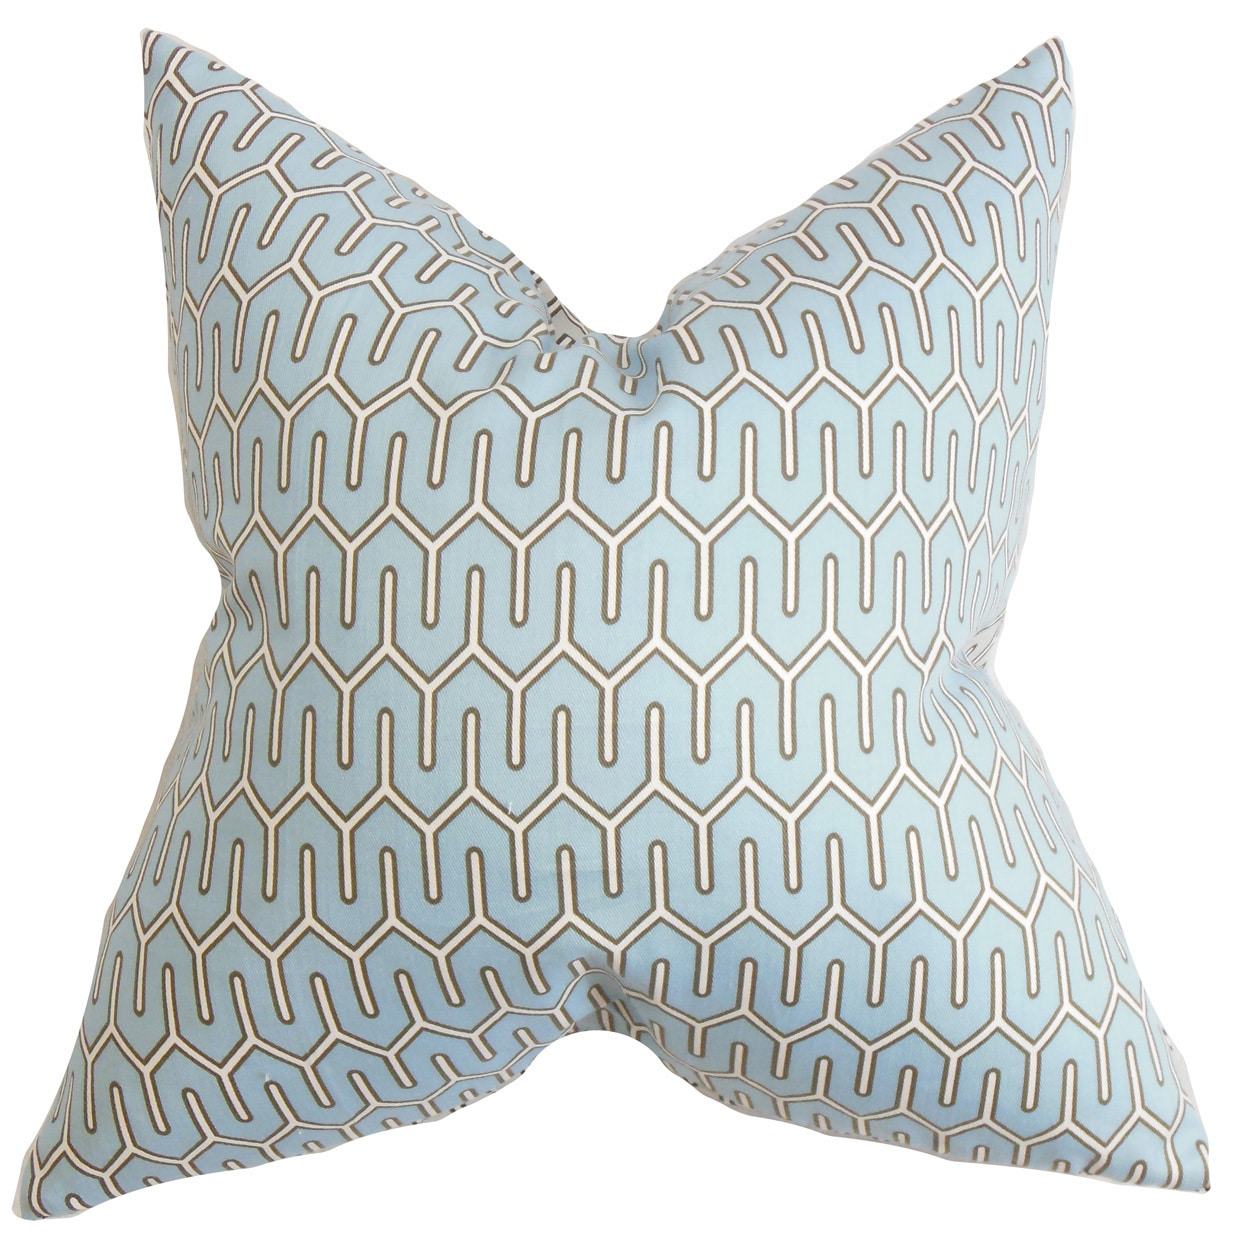 The Pillow Collection Aleeza Geometric 24-inch Down Feather Throw Pillow Blue